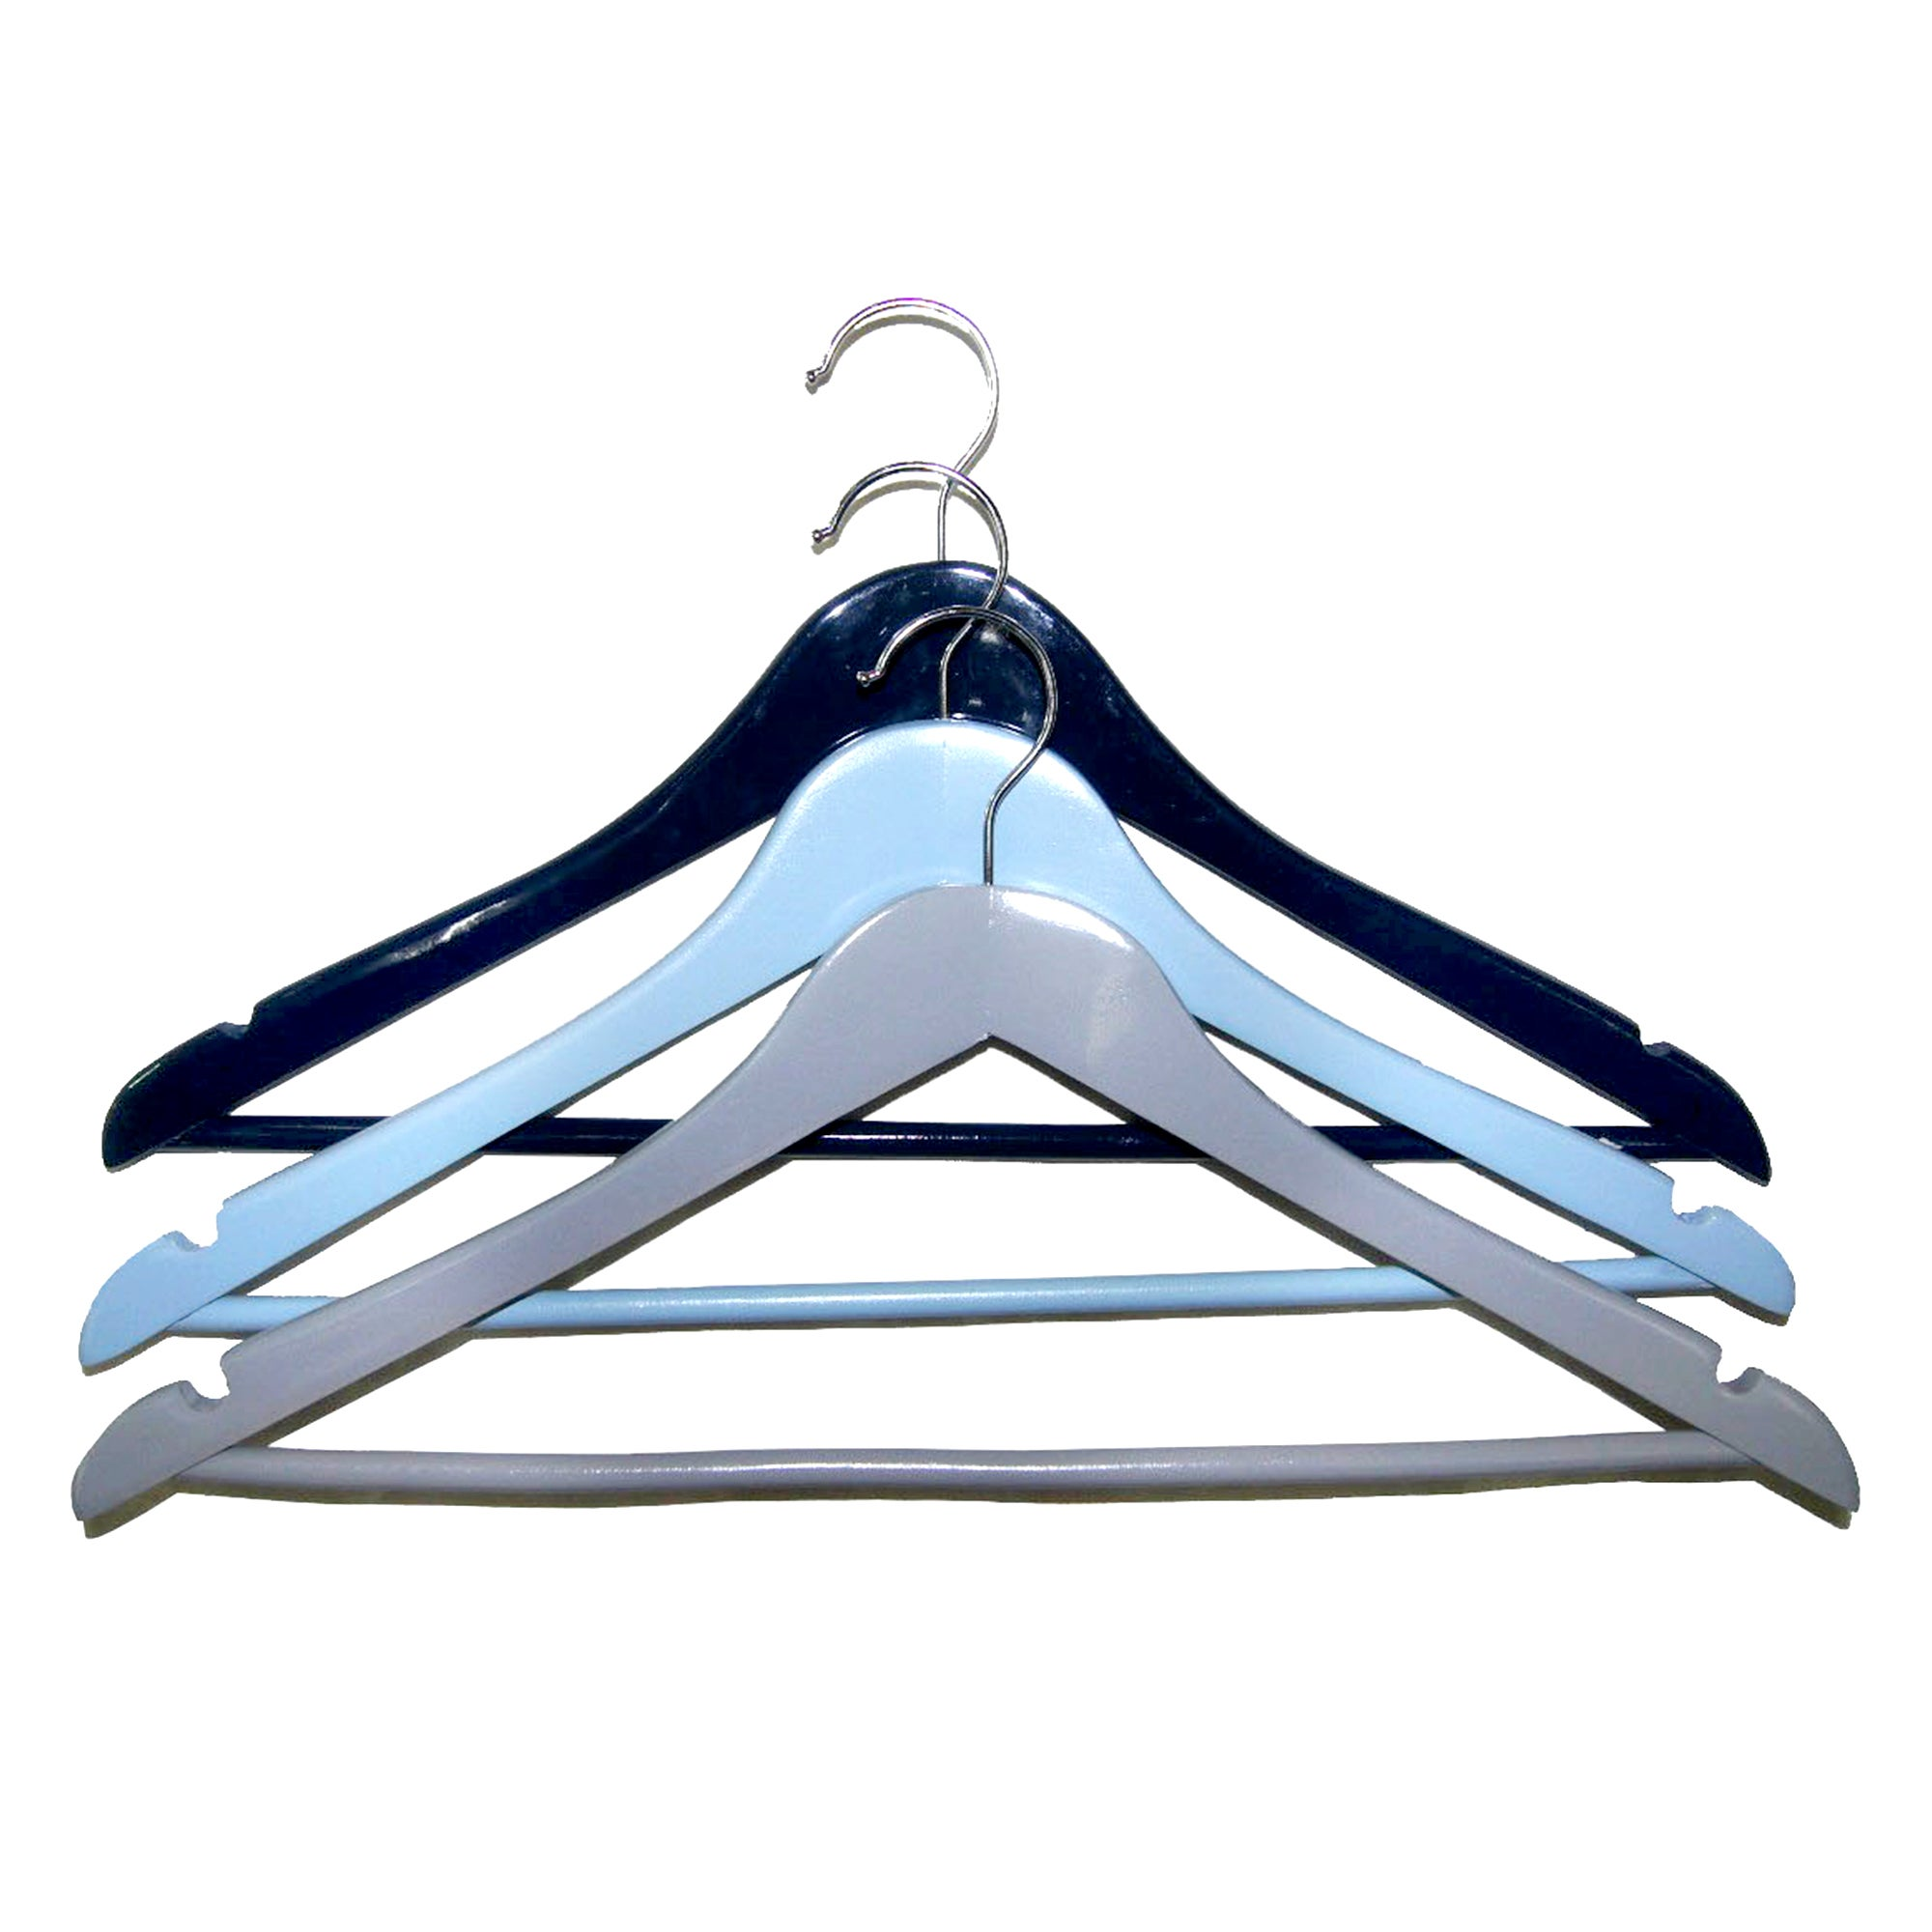 Purity Set of 10 Hangers